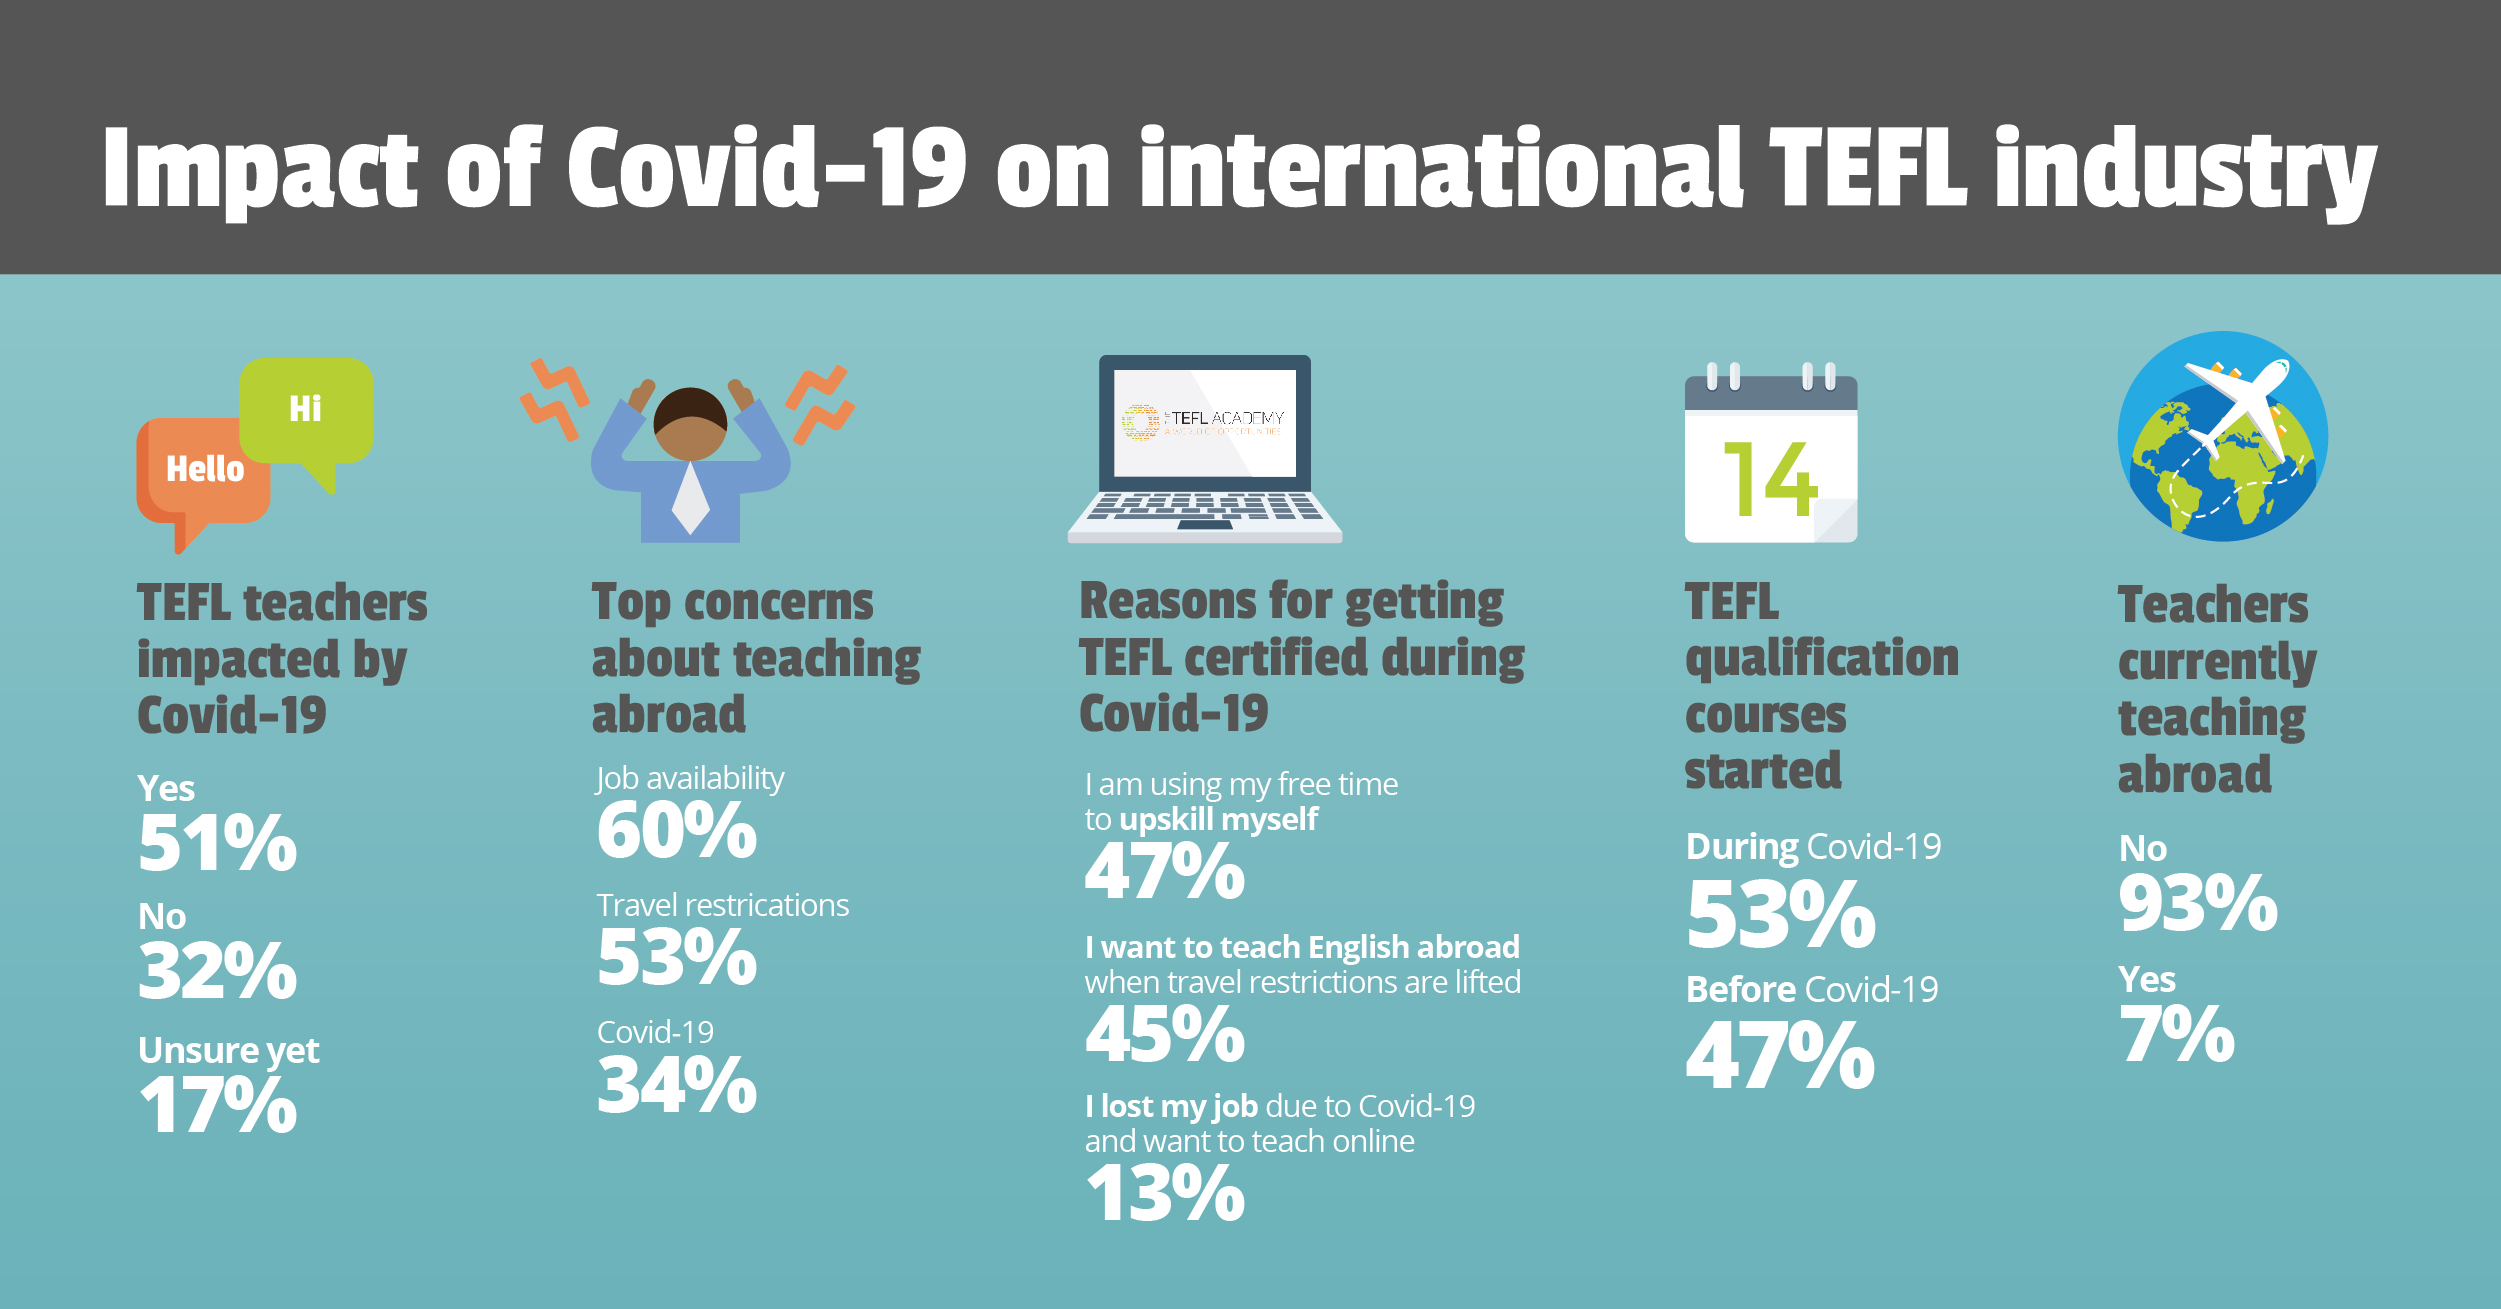 Impact of Covid-19 on International TEFL Industry